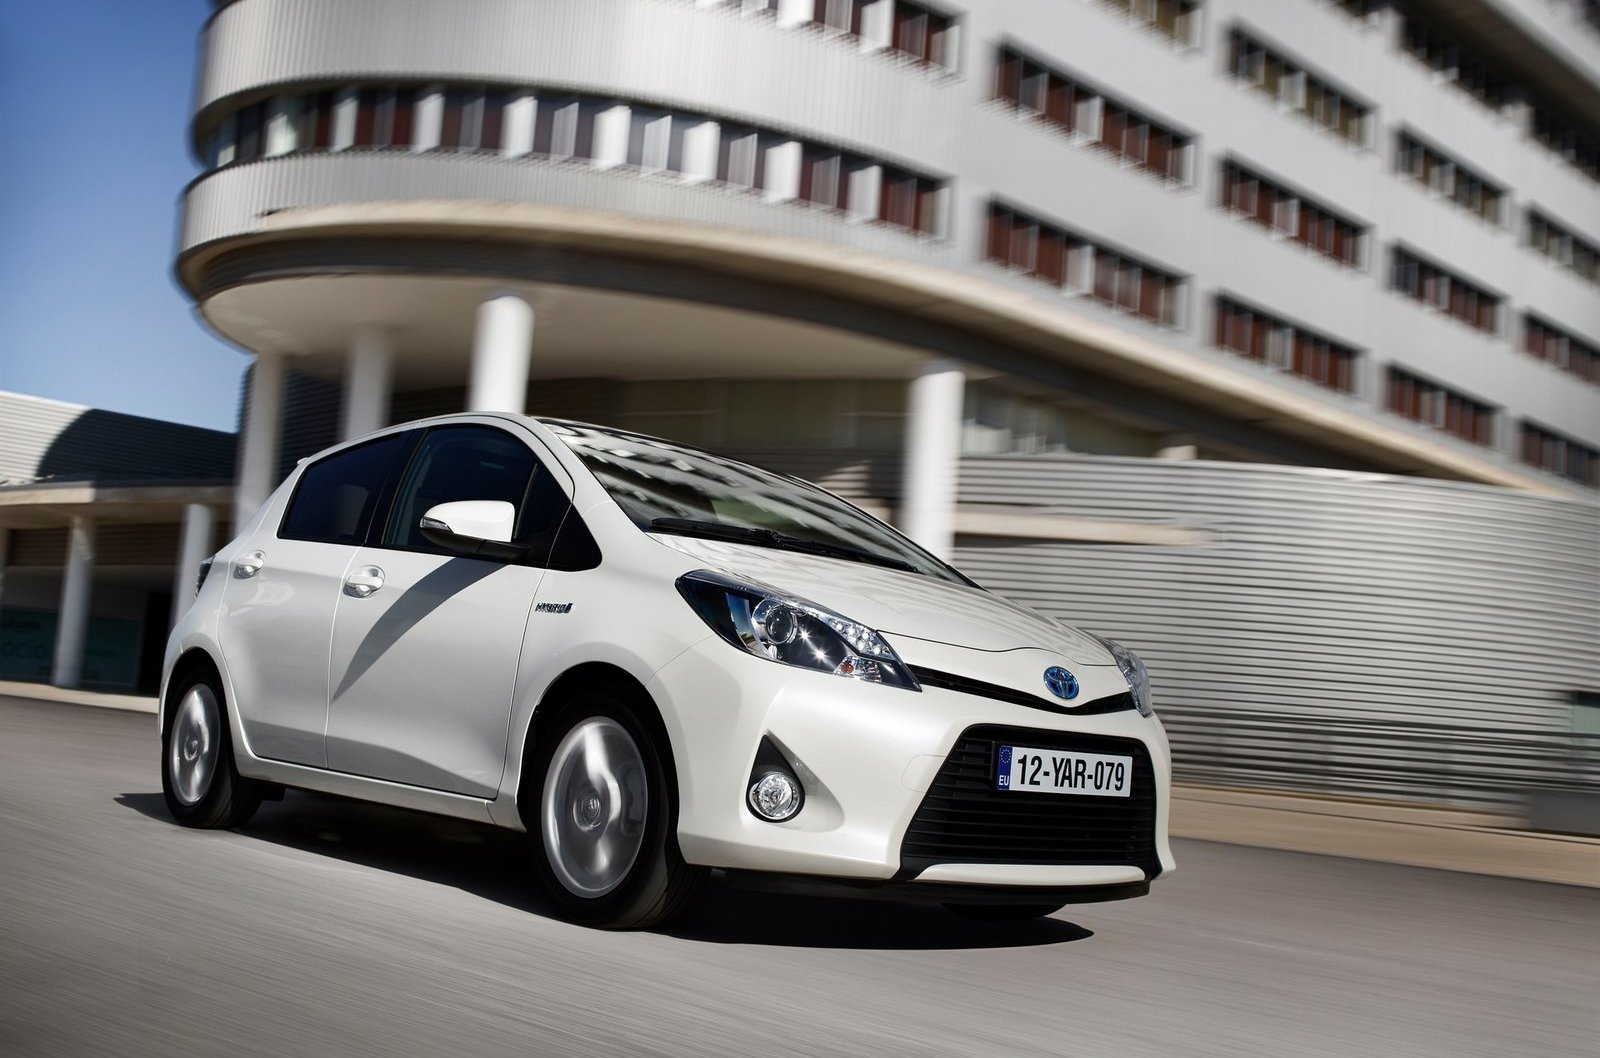 2012 toyota yaris hybrid review top speed. Black Bedroom Furniture Sets. Home Design Ideas